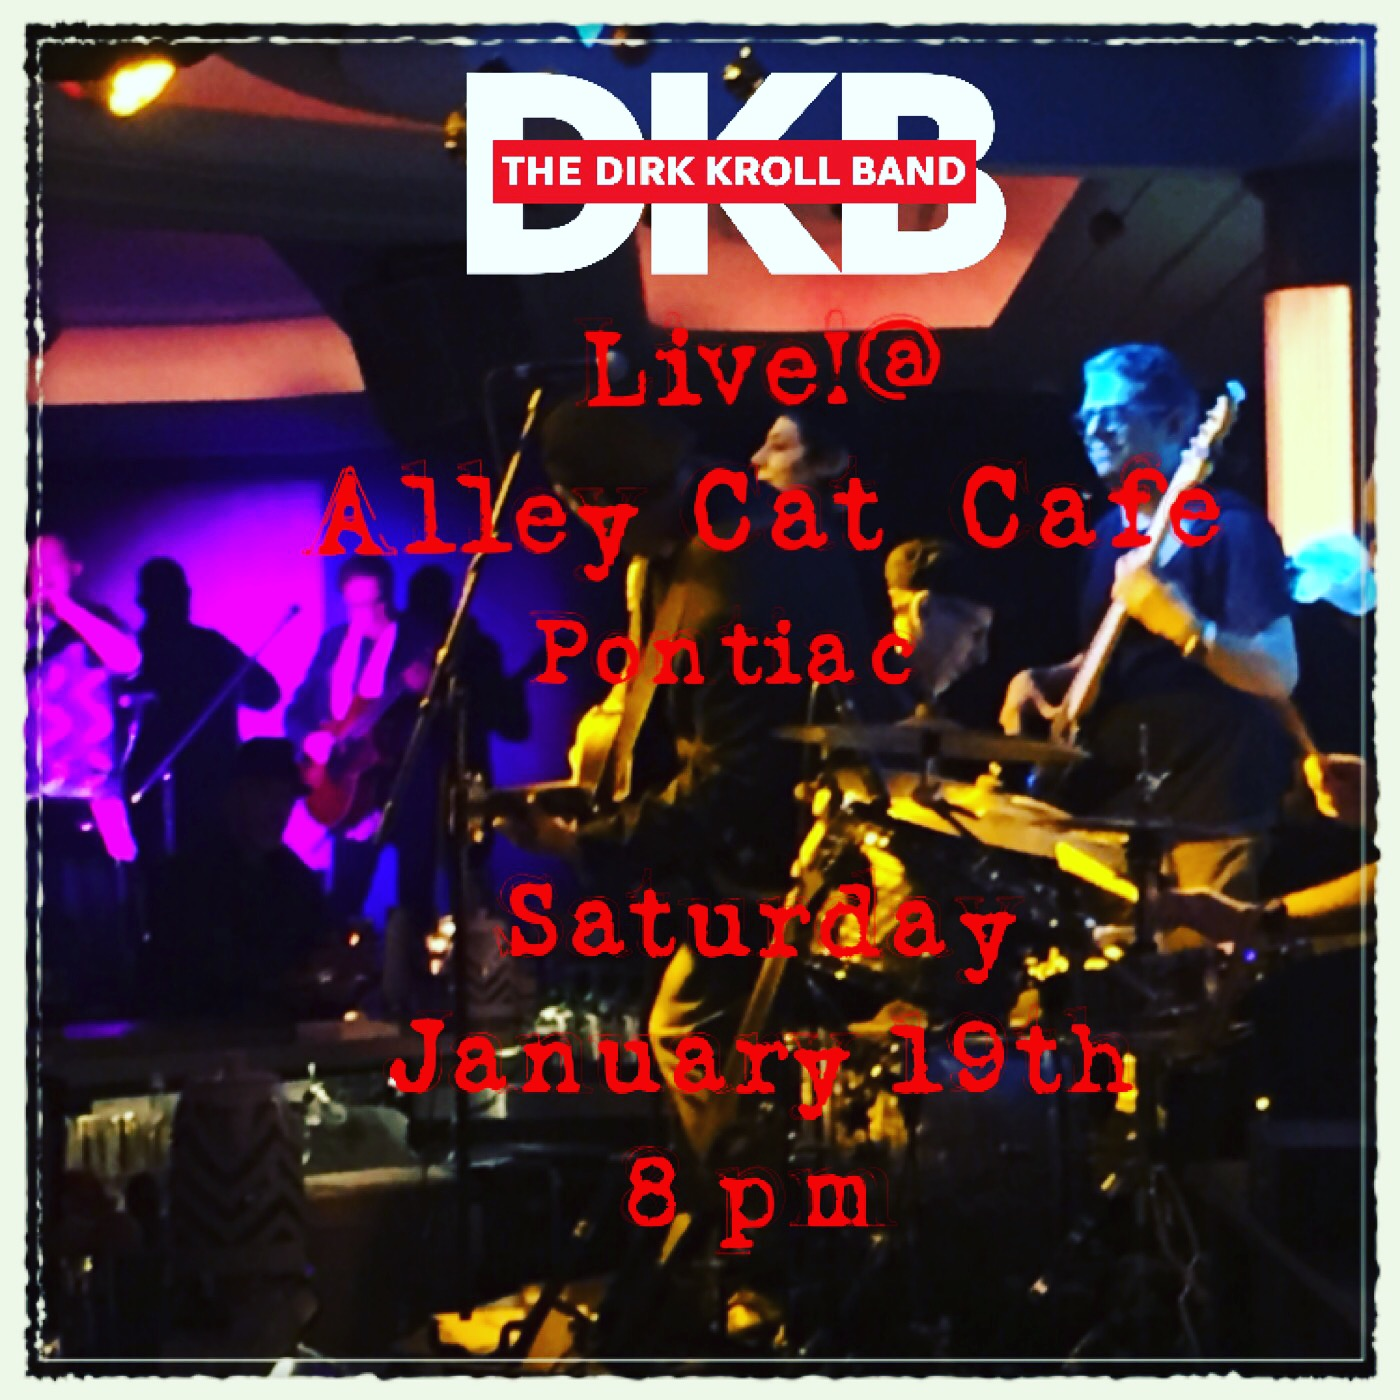 THE DIRK KROLL BAND Live! @ Alley Cat Cafe